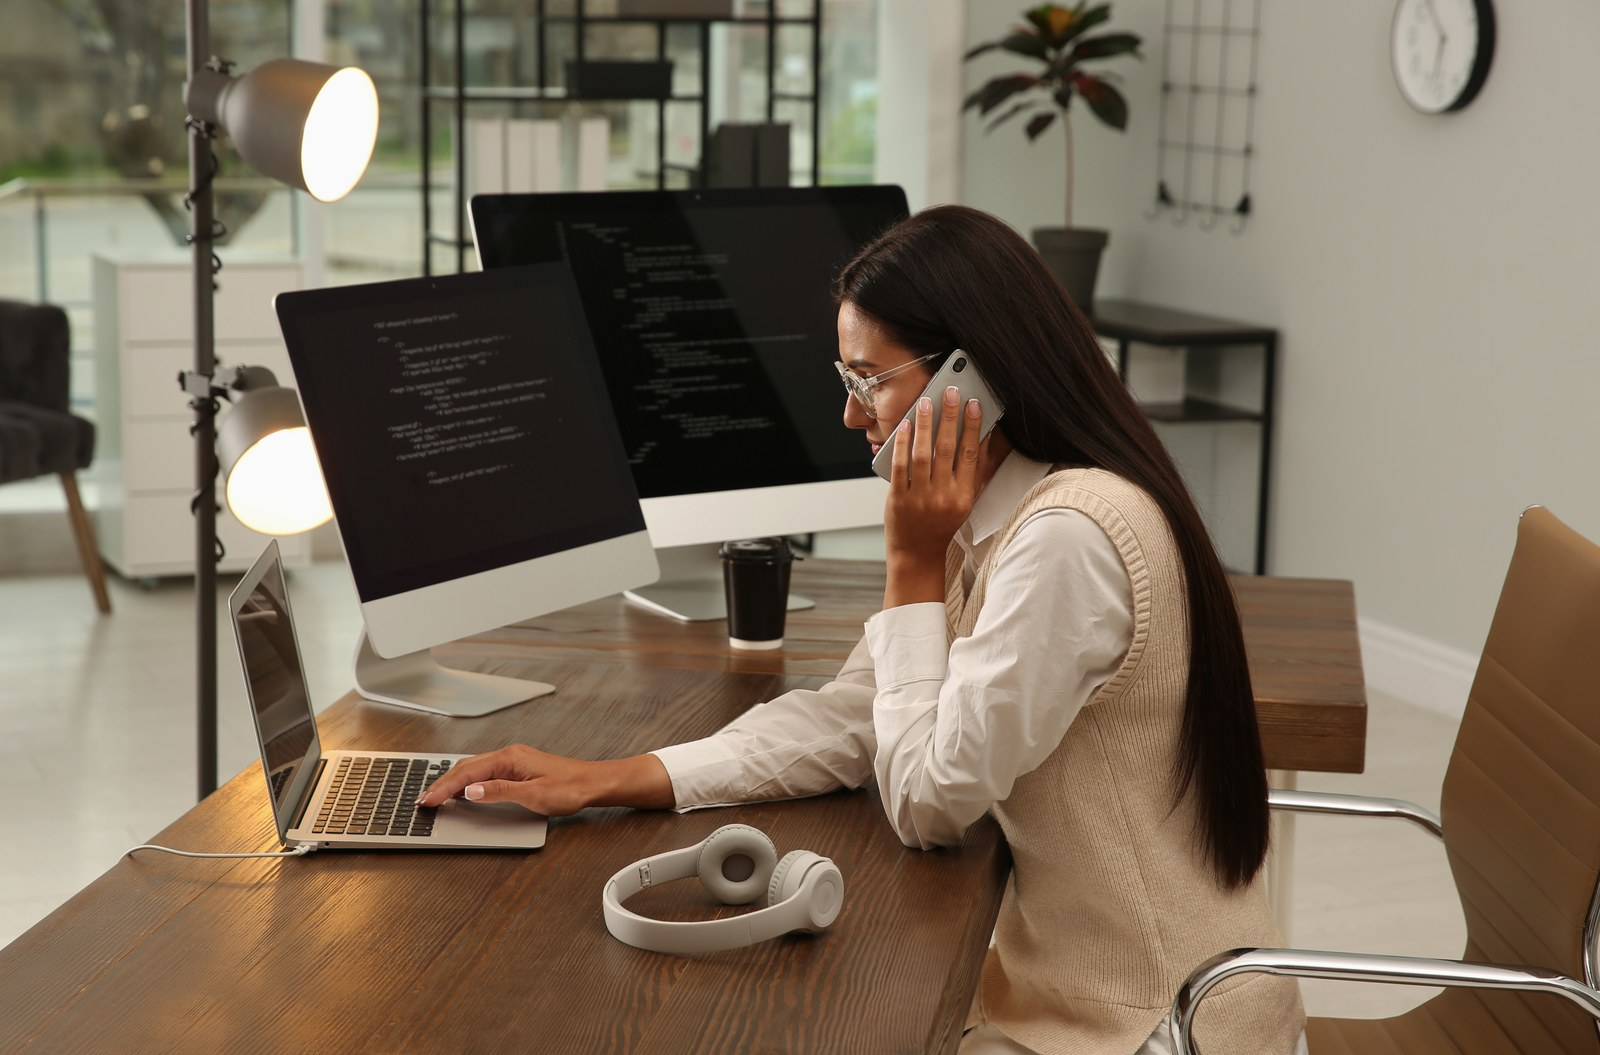 Programmer talking on phone while working at desk in office